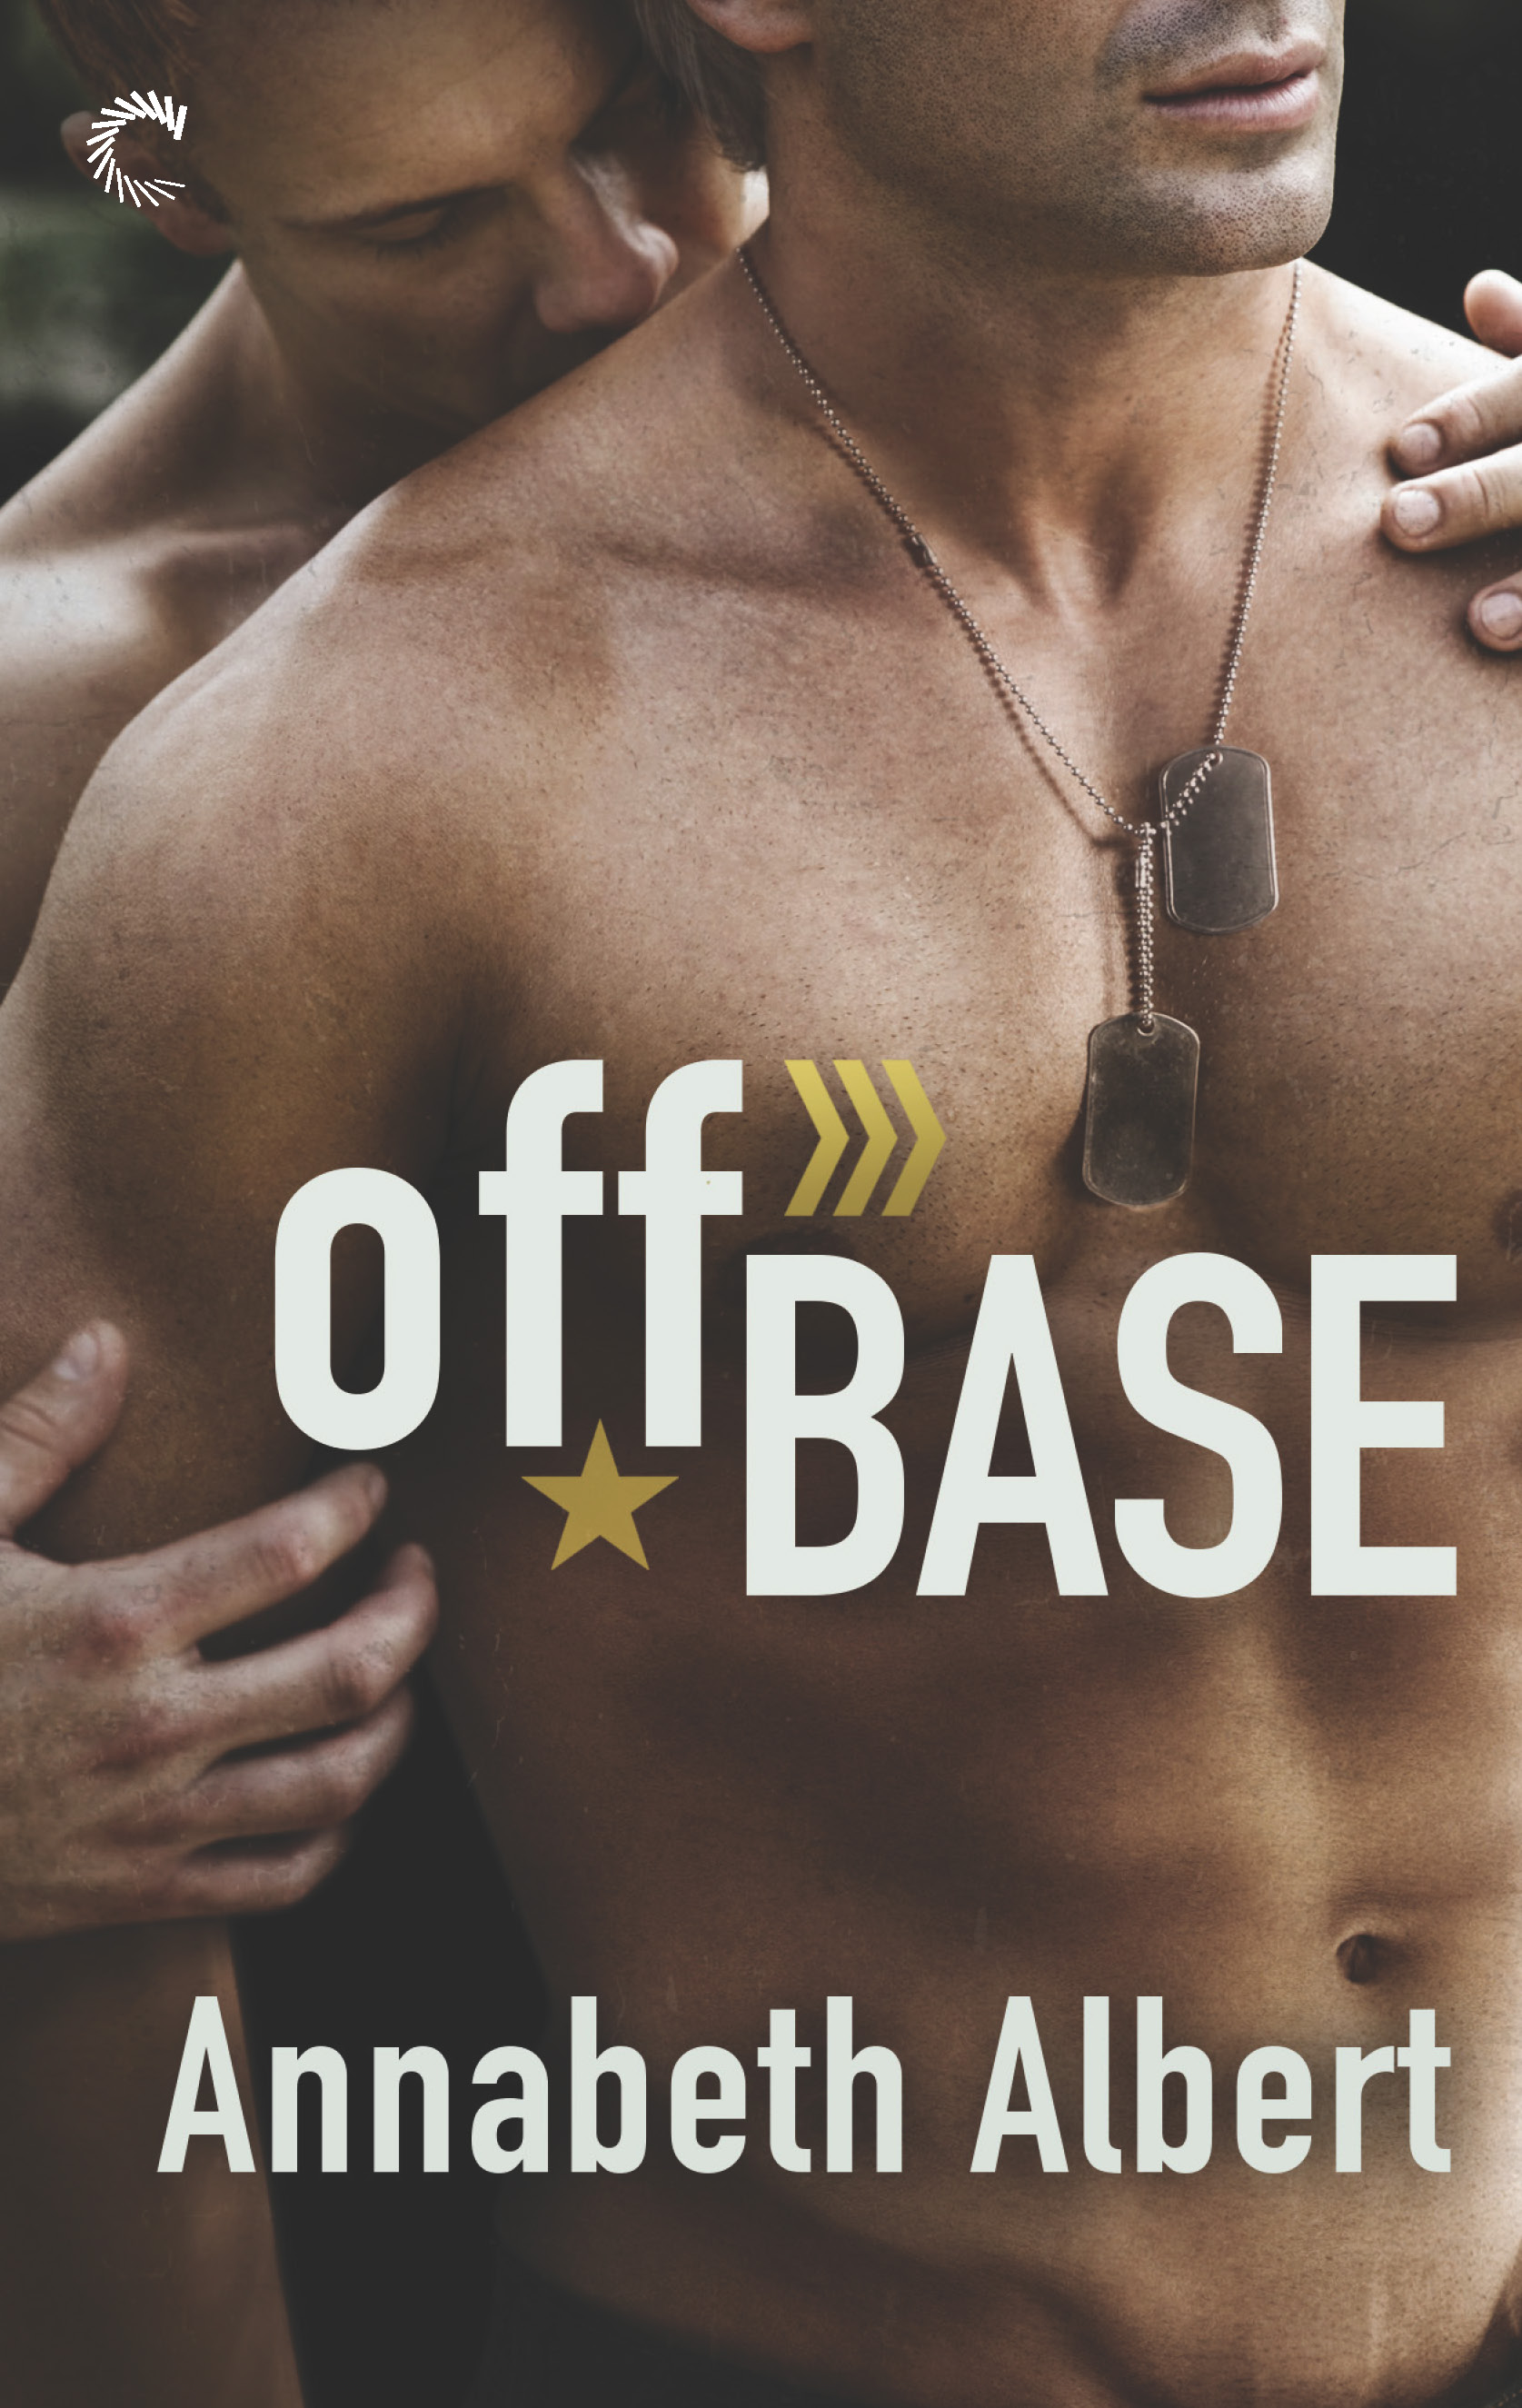 Off Base Annabeth Albert